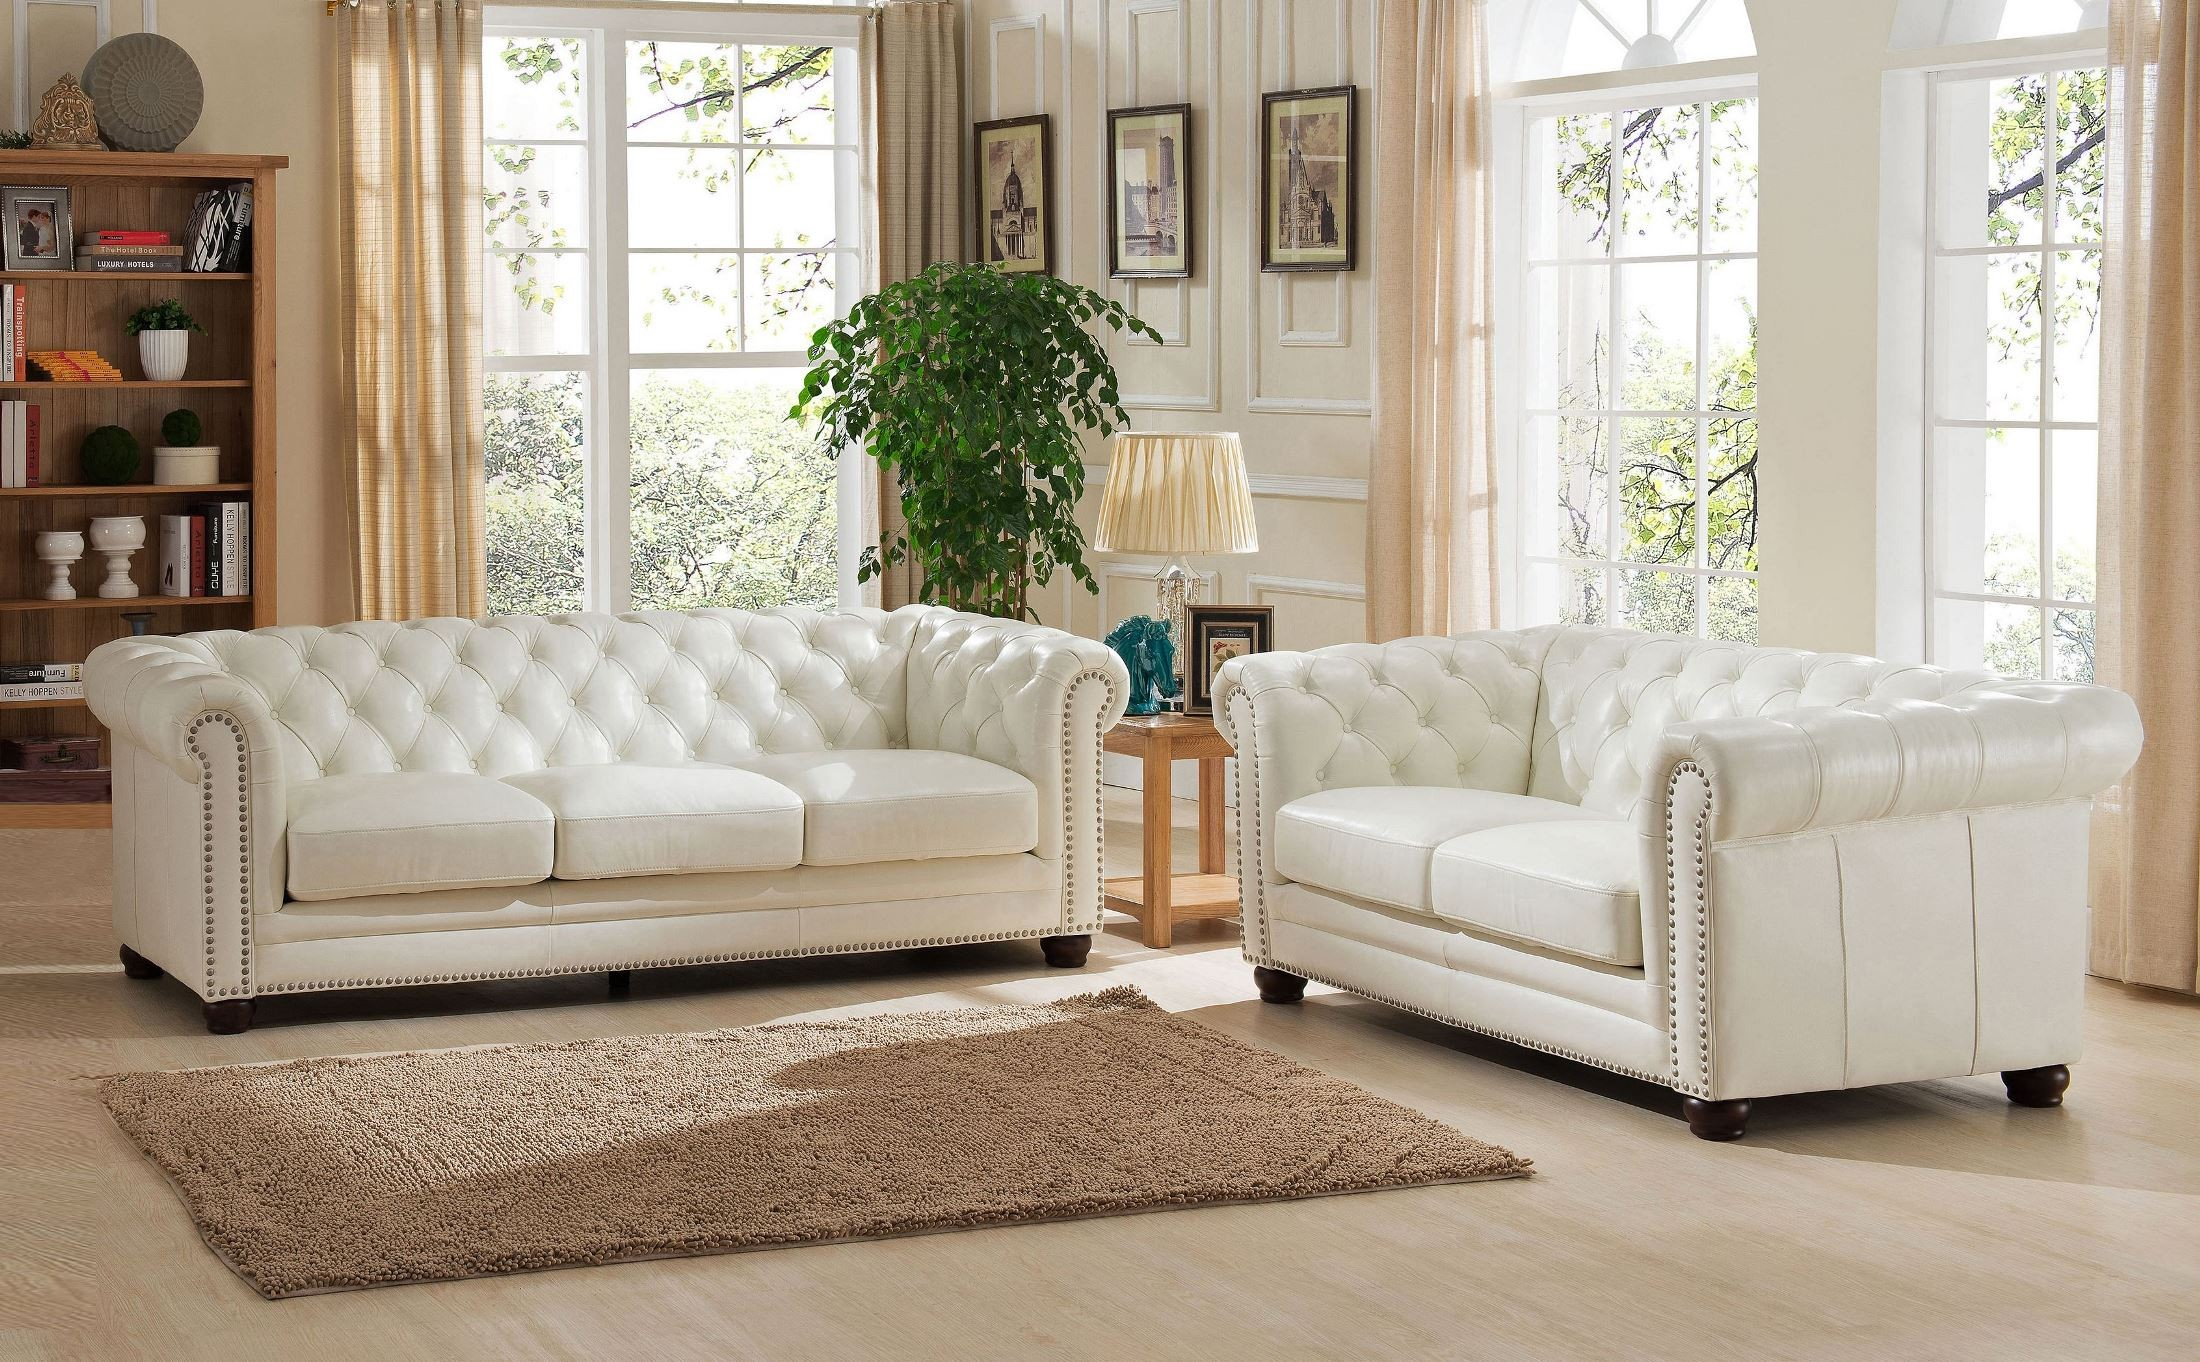 Monaco Pearl White Leather Living Room Set From Amax Leather Coleman Furniture